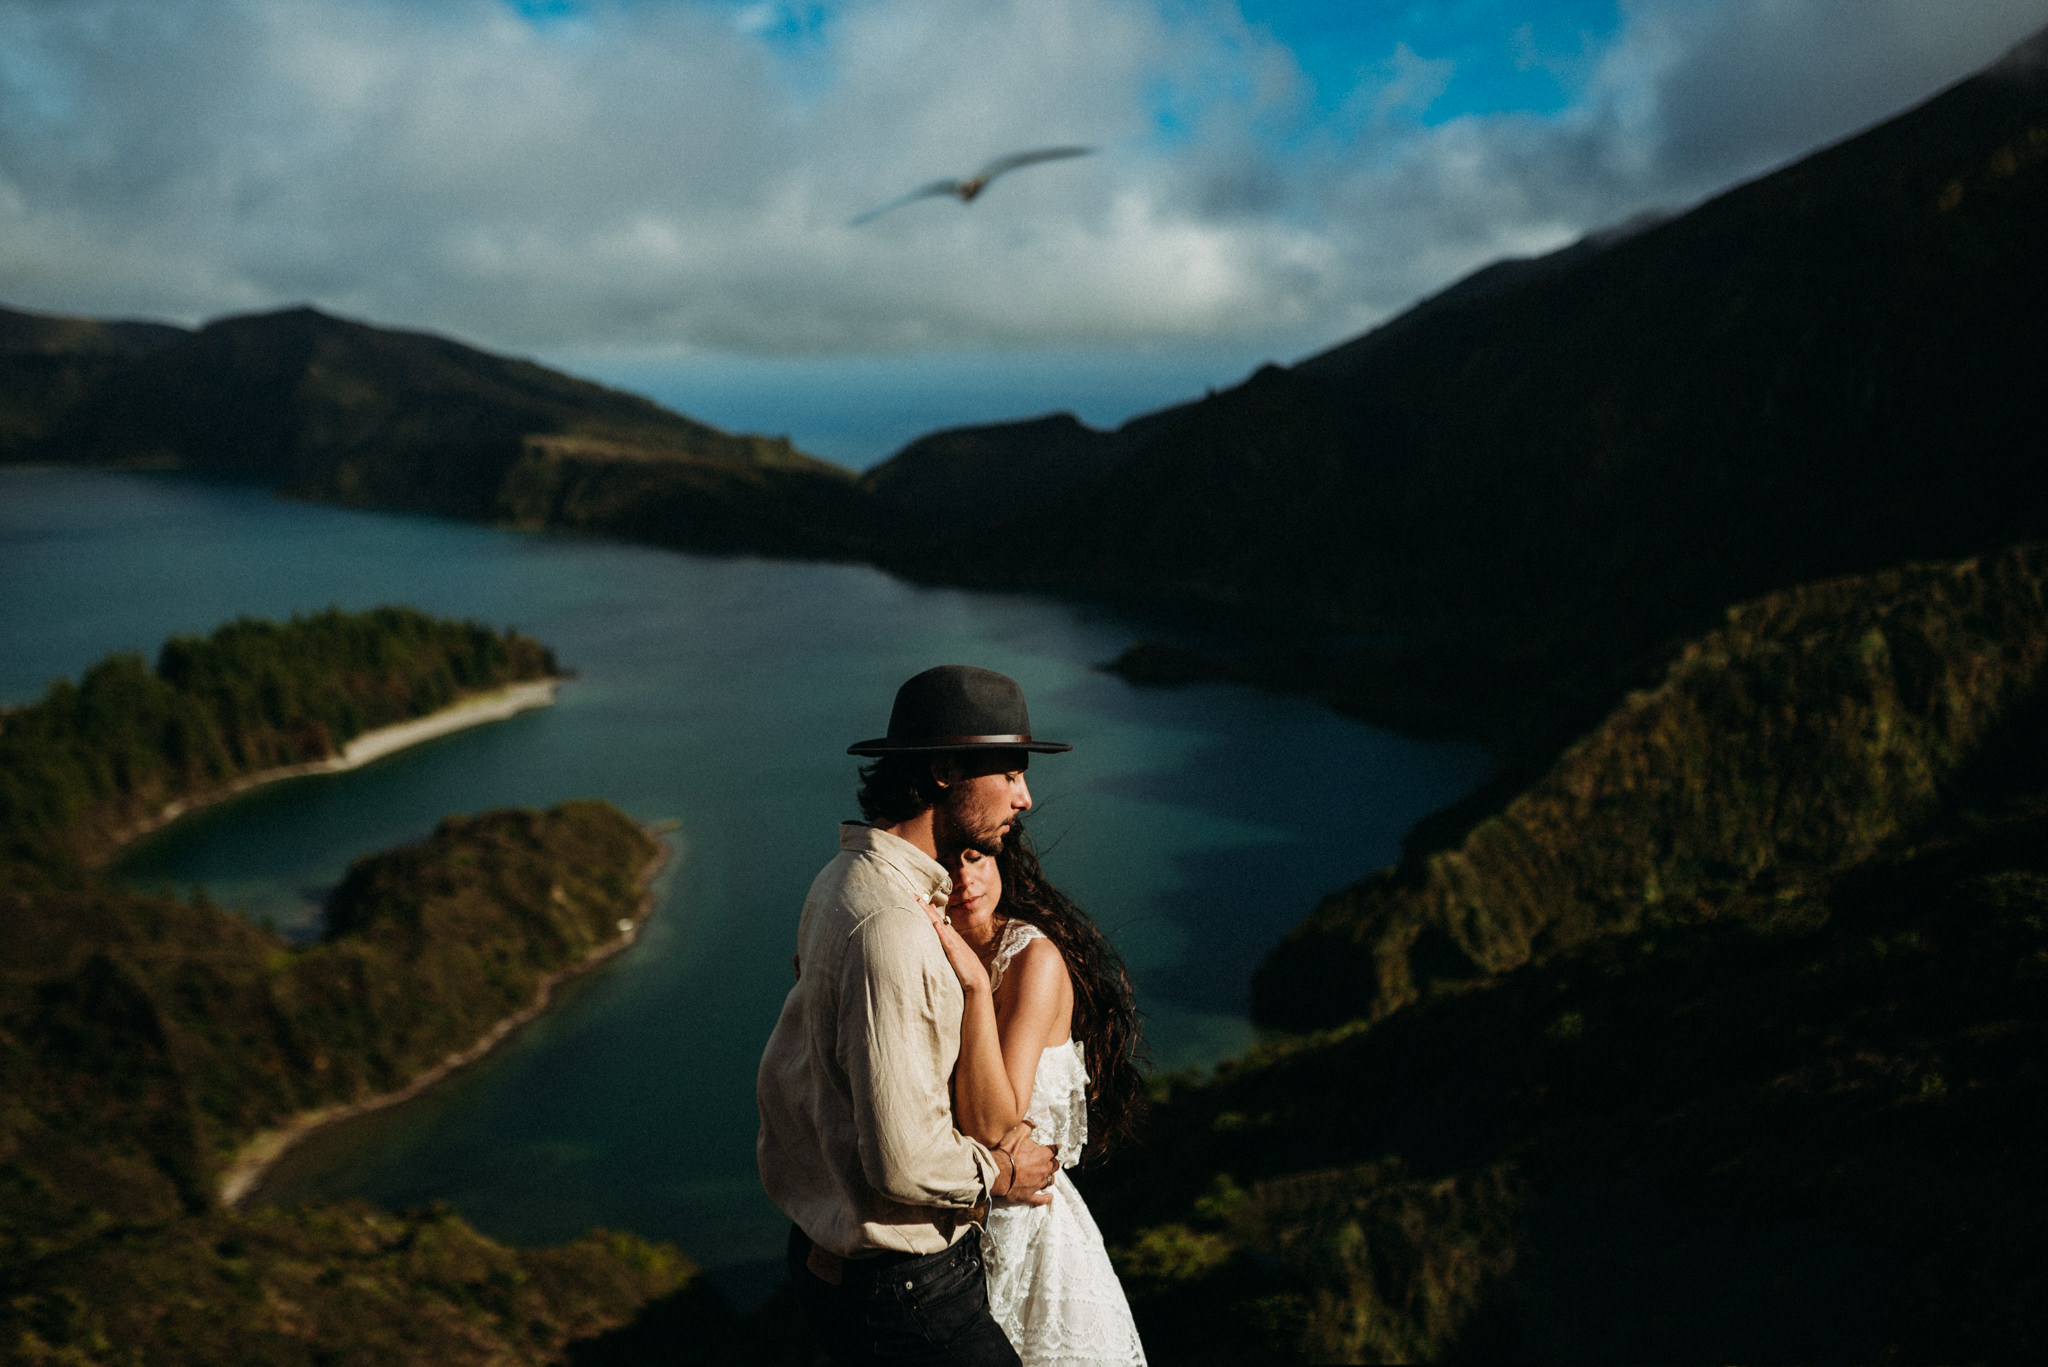 twyla jones photography - portugal azores waterfall couples engagement elopement -13.jpg